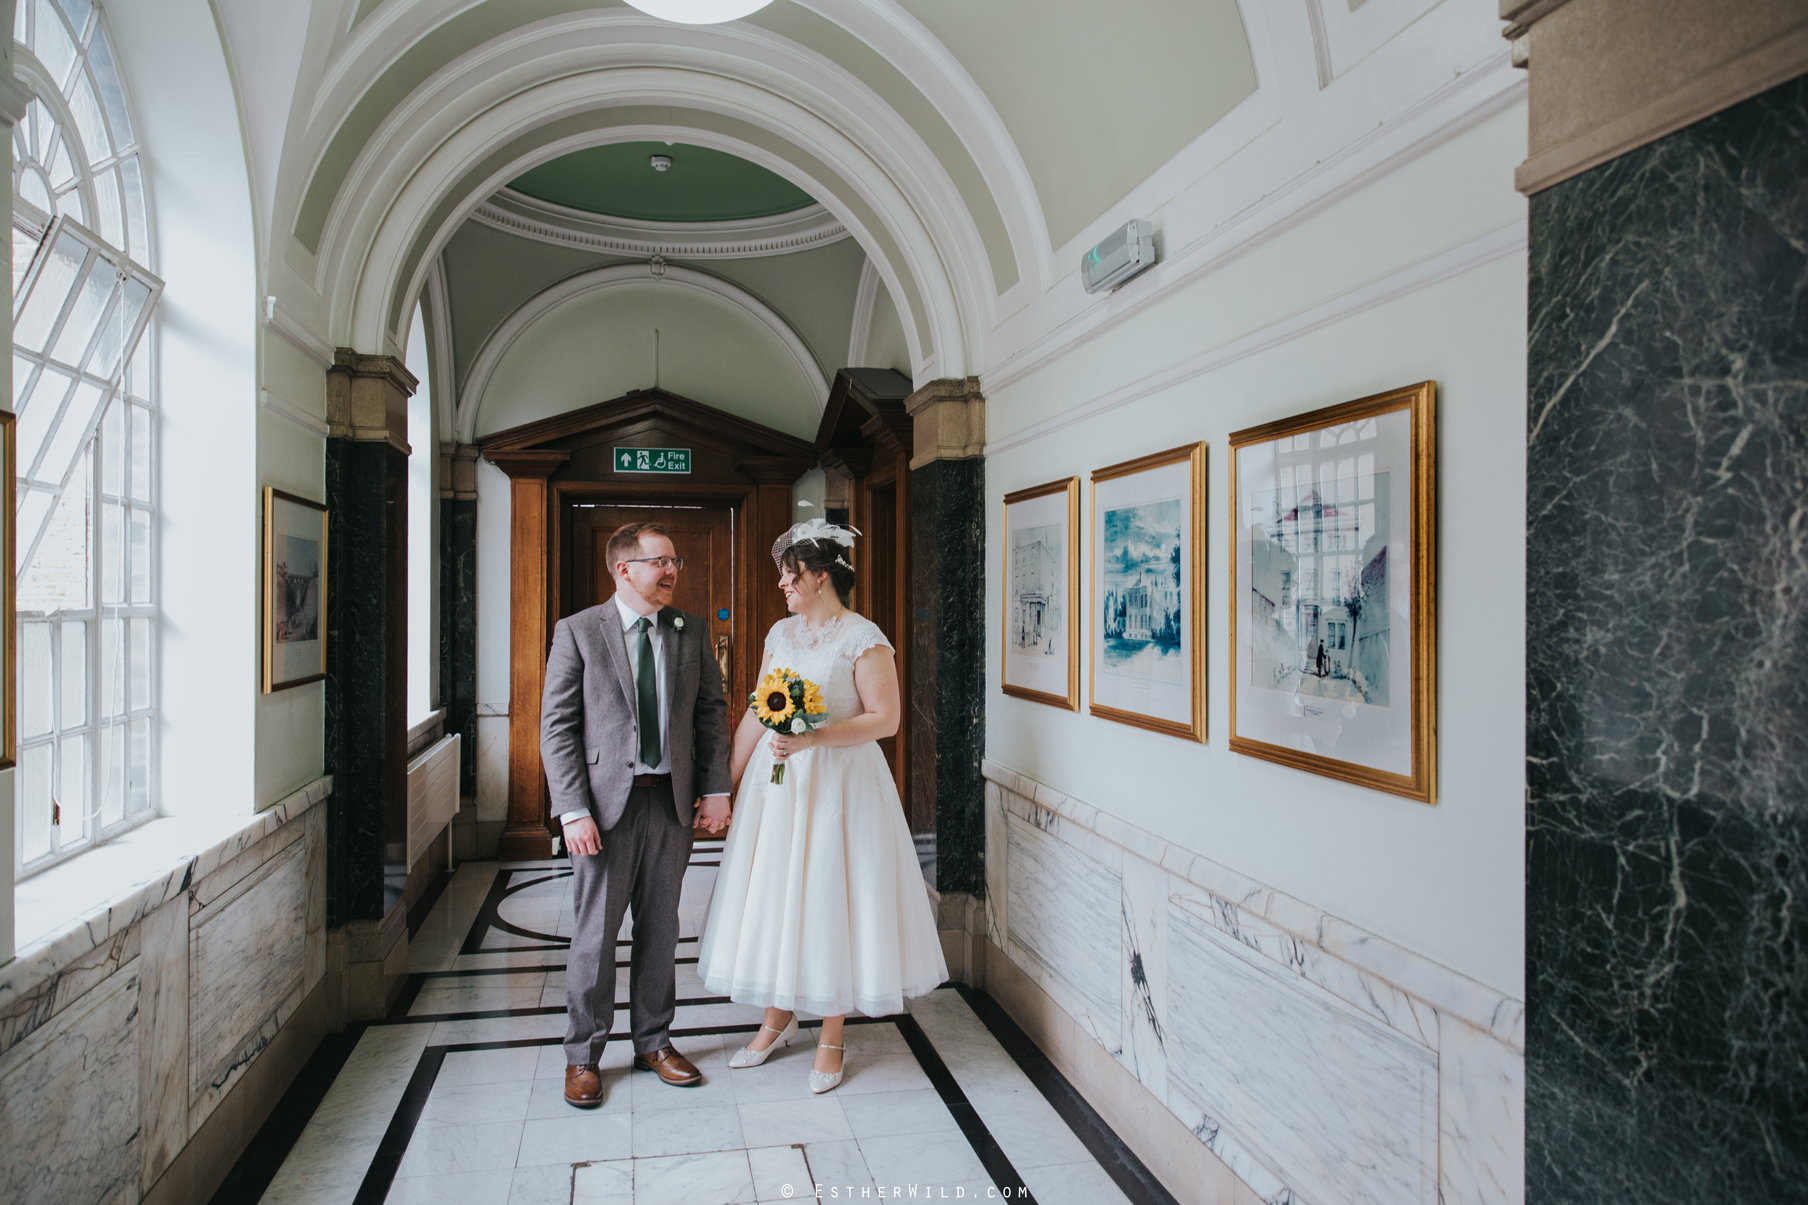 Islington_Town_Hall_Assembly_Hall_Council_Chamber_The_Star_Pub_London_Sacred_Wedding_Copyright_Esther_Wild_Photographer_IMG_0565.jpg